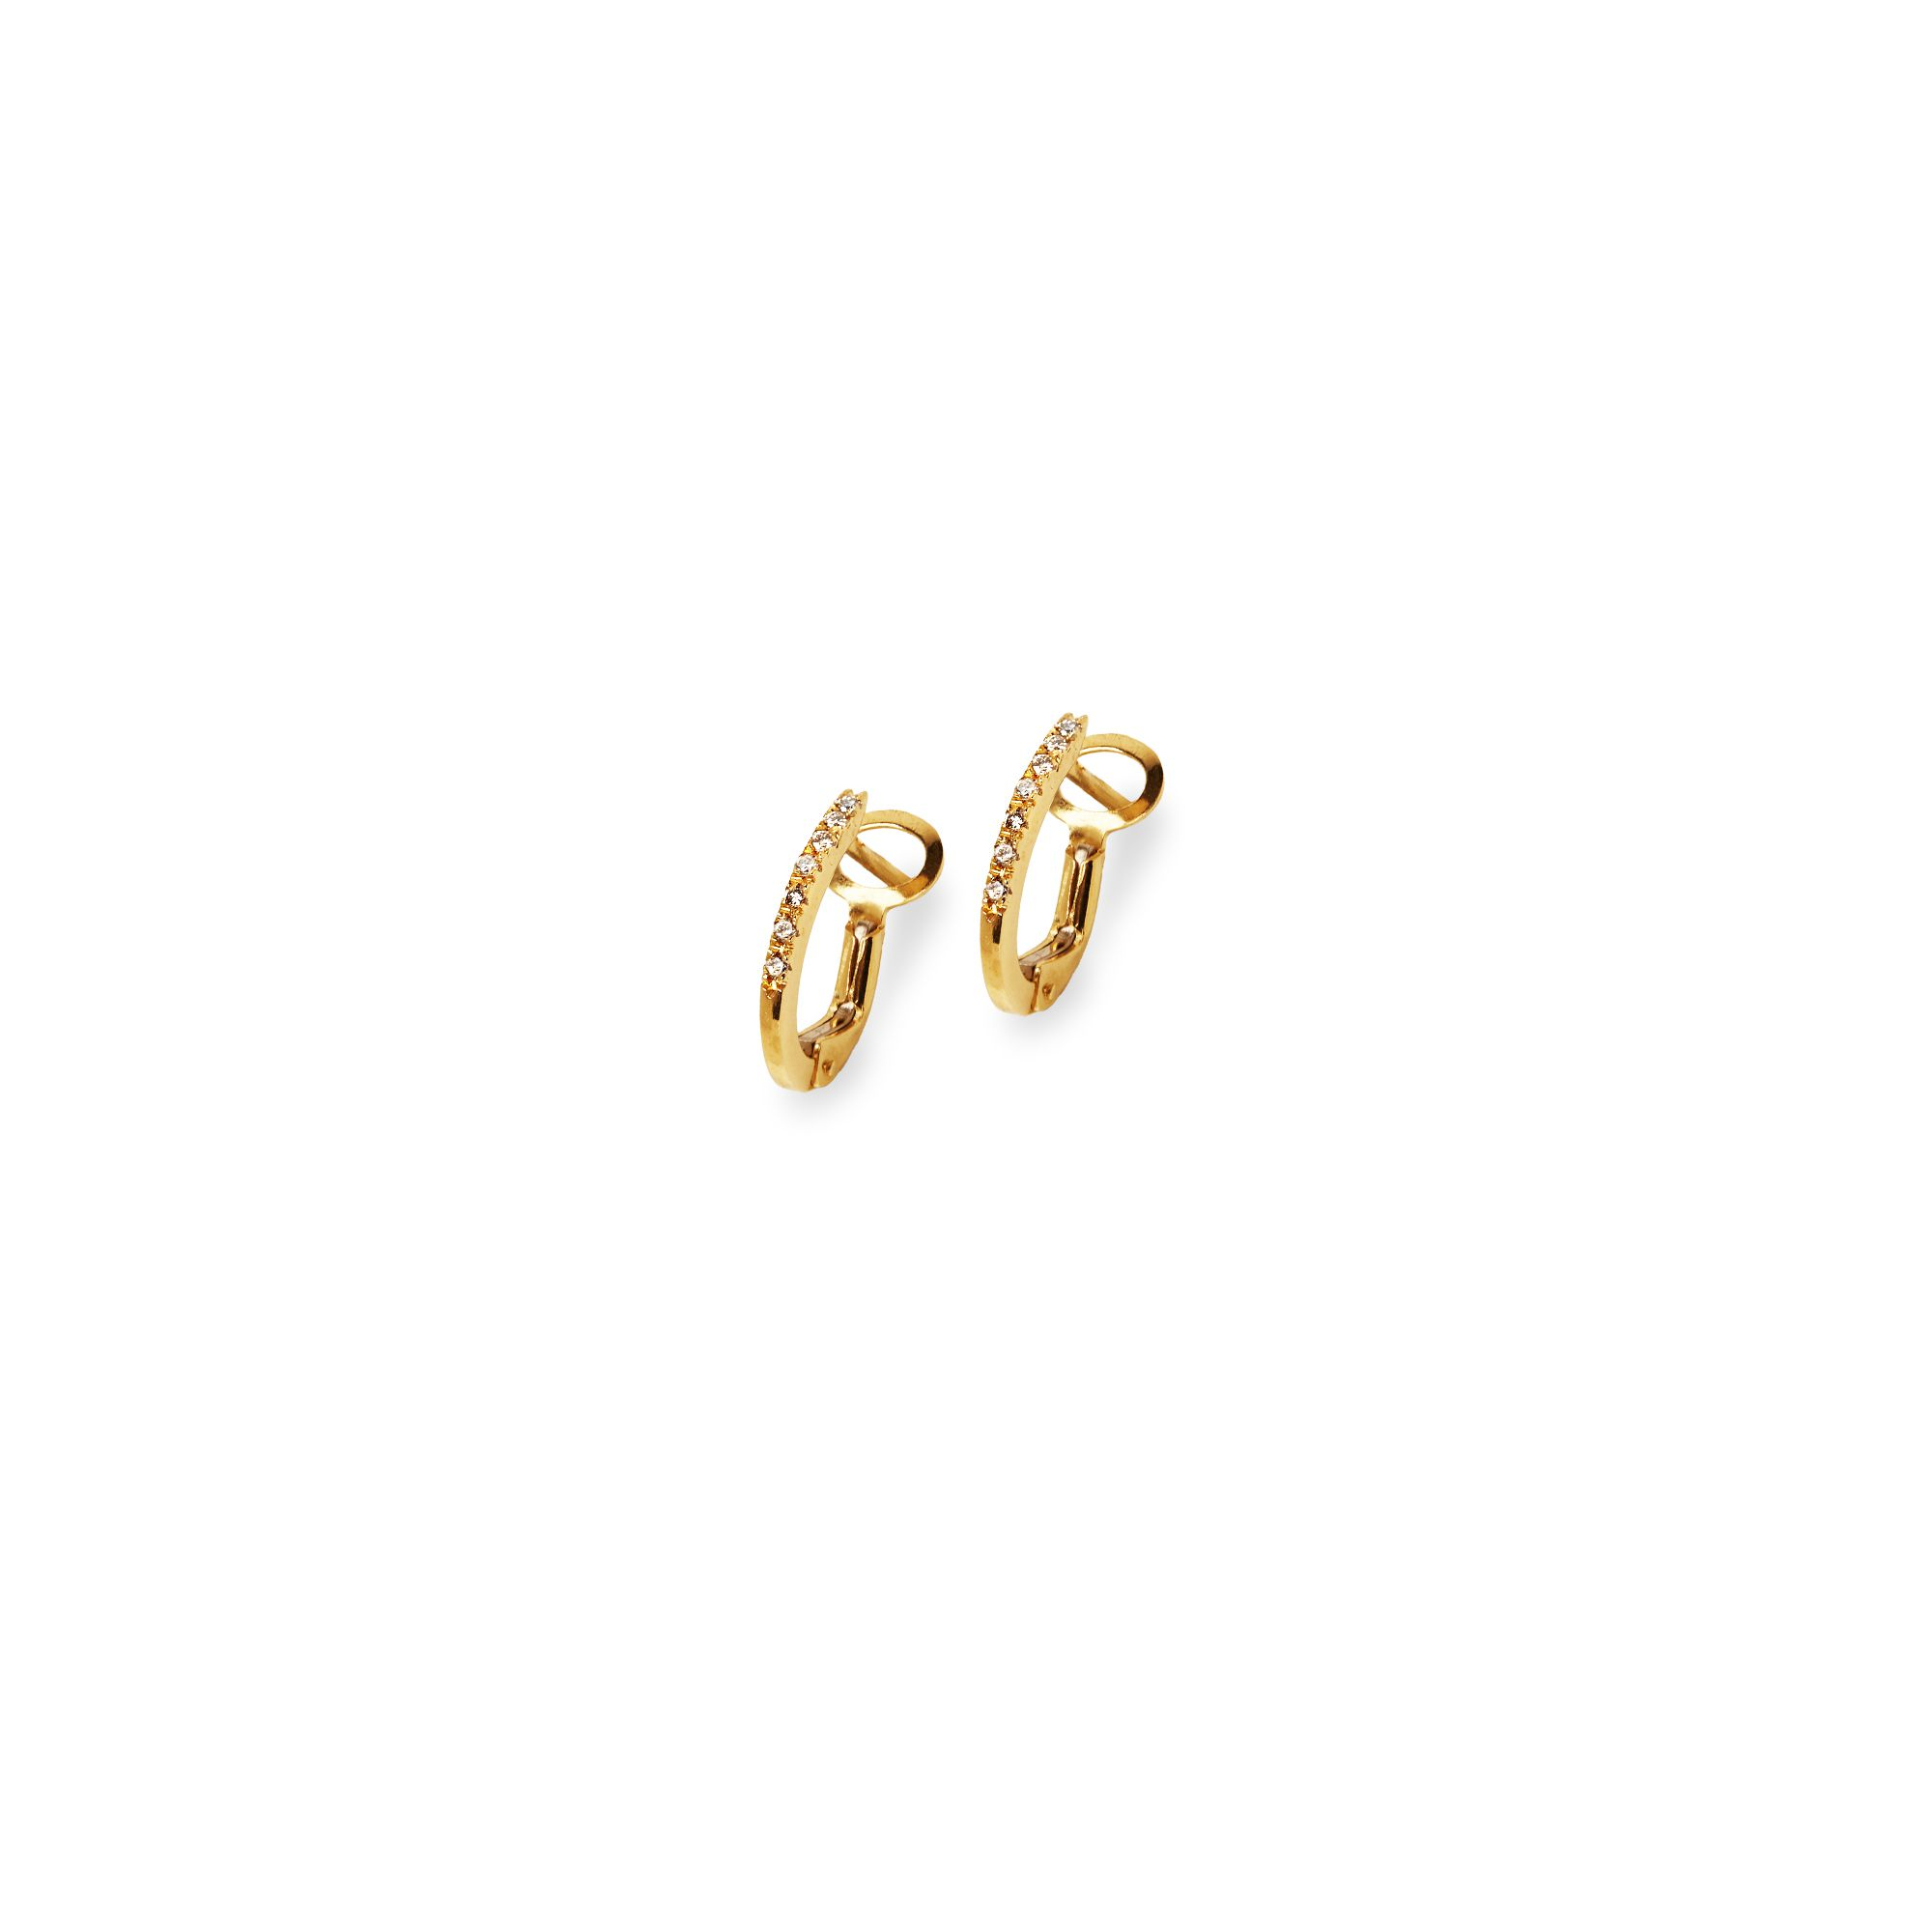 'Balance' small hoop earrings Earrings in yellow gold and diamonds